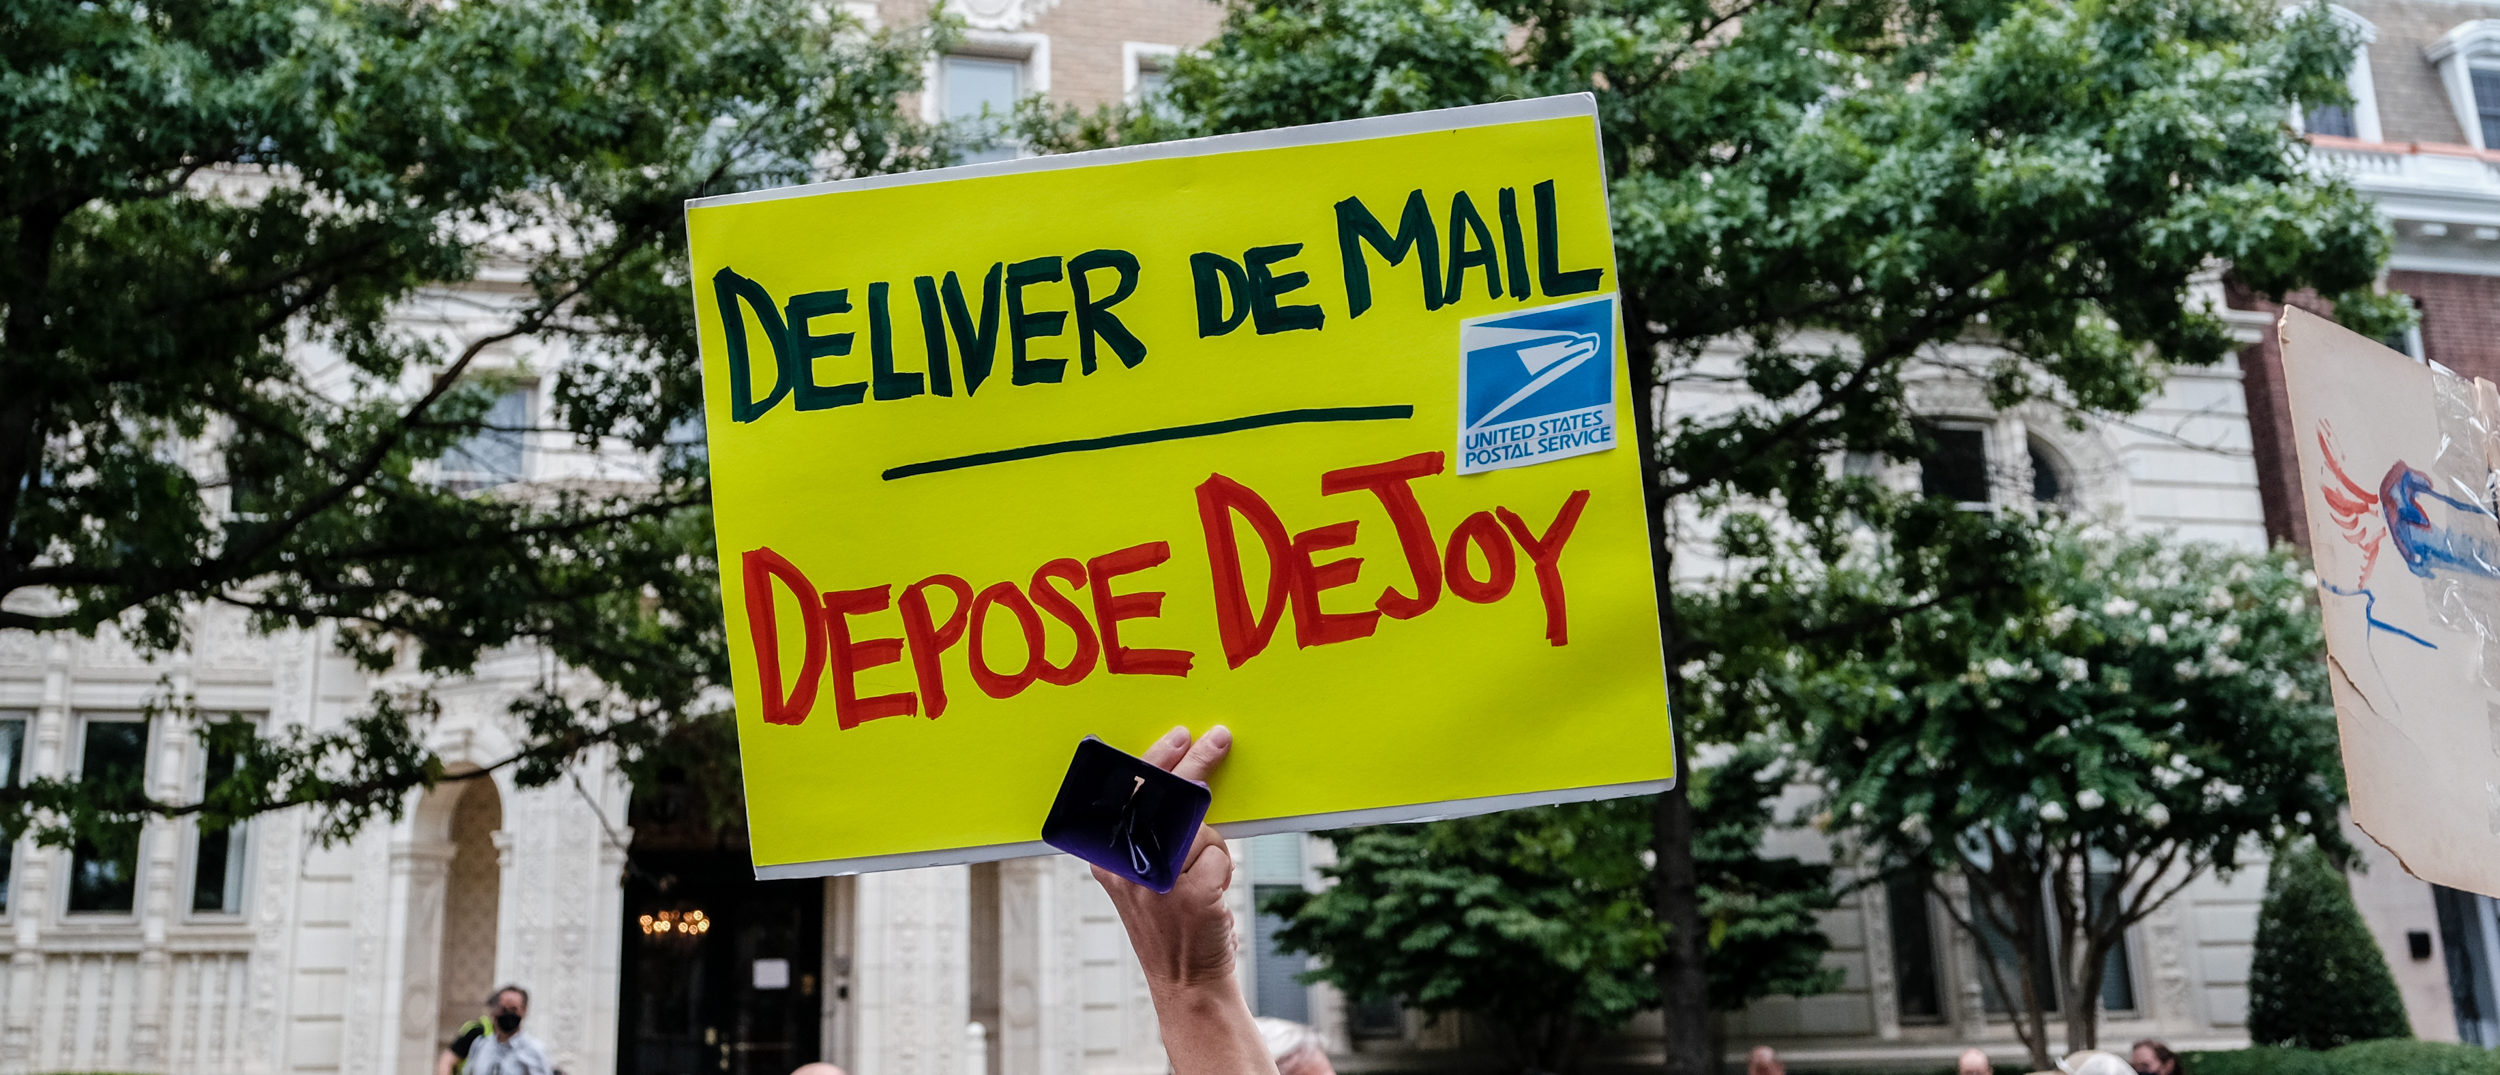 WASHINGTON, DC - AUG. 15: Demonstrators gather outside of the condo of President Donald Trump donor and current U.S. Postmaster General Louis Dejoy on Aug. 15, 2020 in Washington, DC. The protests are in response to a recent statement by President Trump to withhold USPS funding that would ensure that the post office would be unable handle mail-in voting ballots for the upcoming 2020 Election. (Photo by Michael A. McCoy/Getty Images)